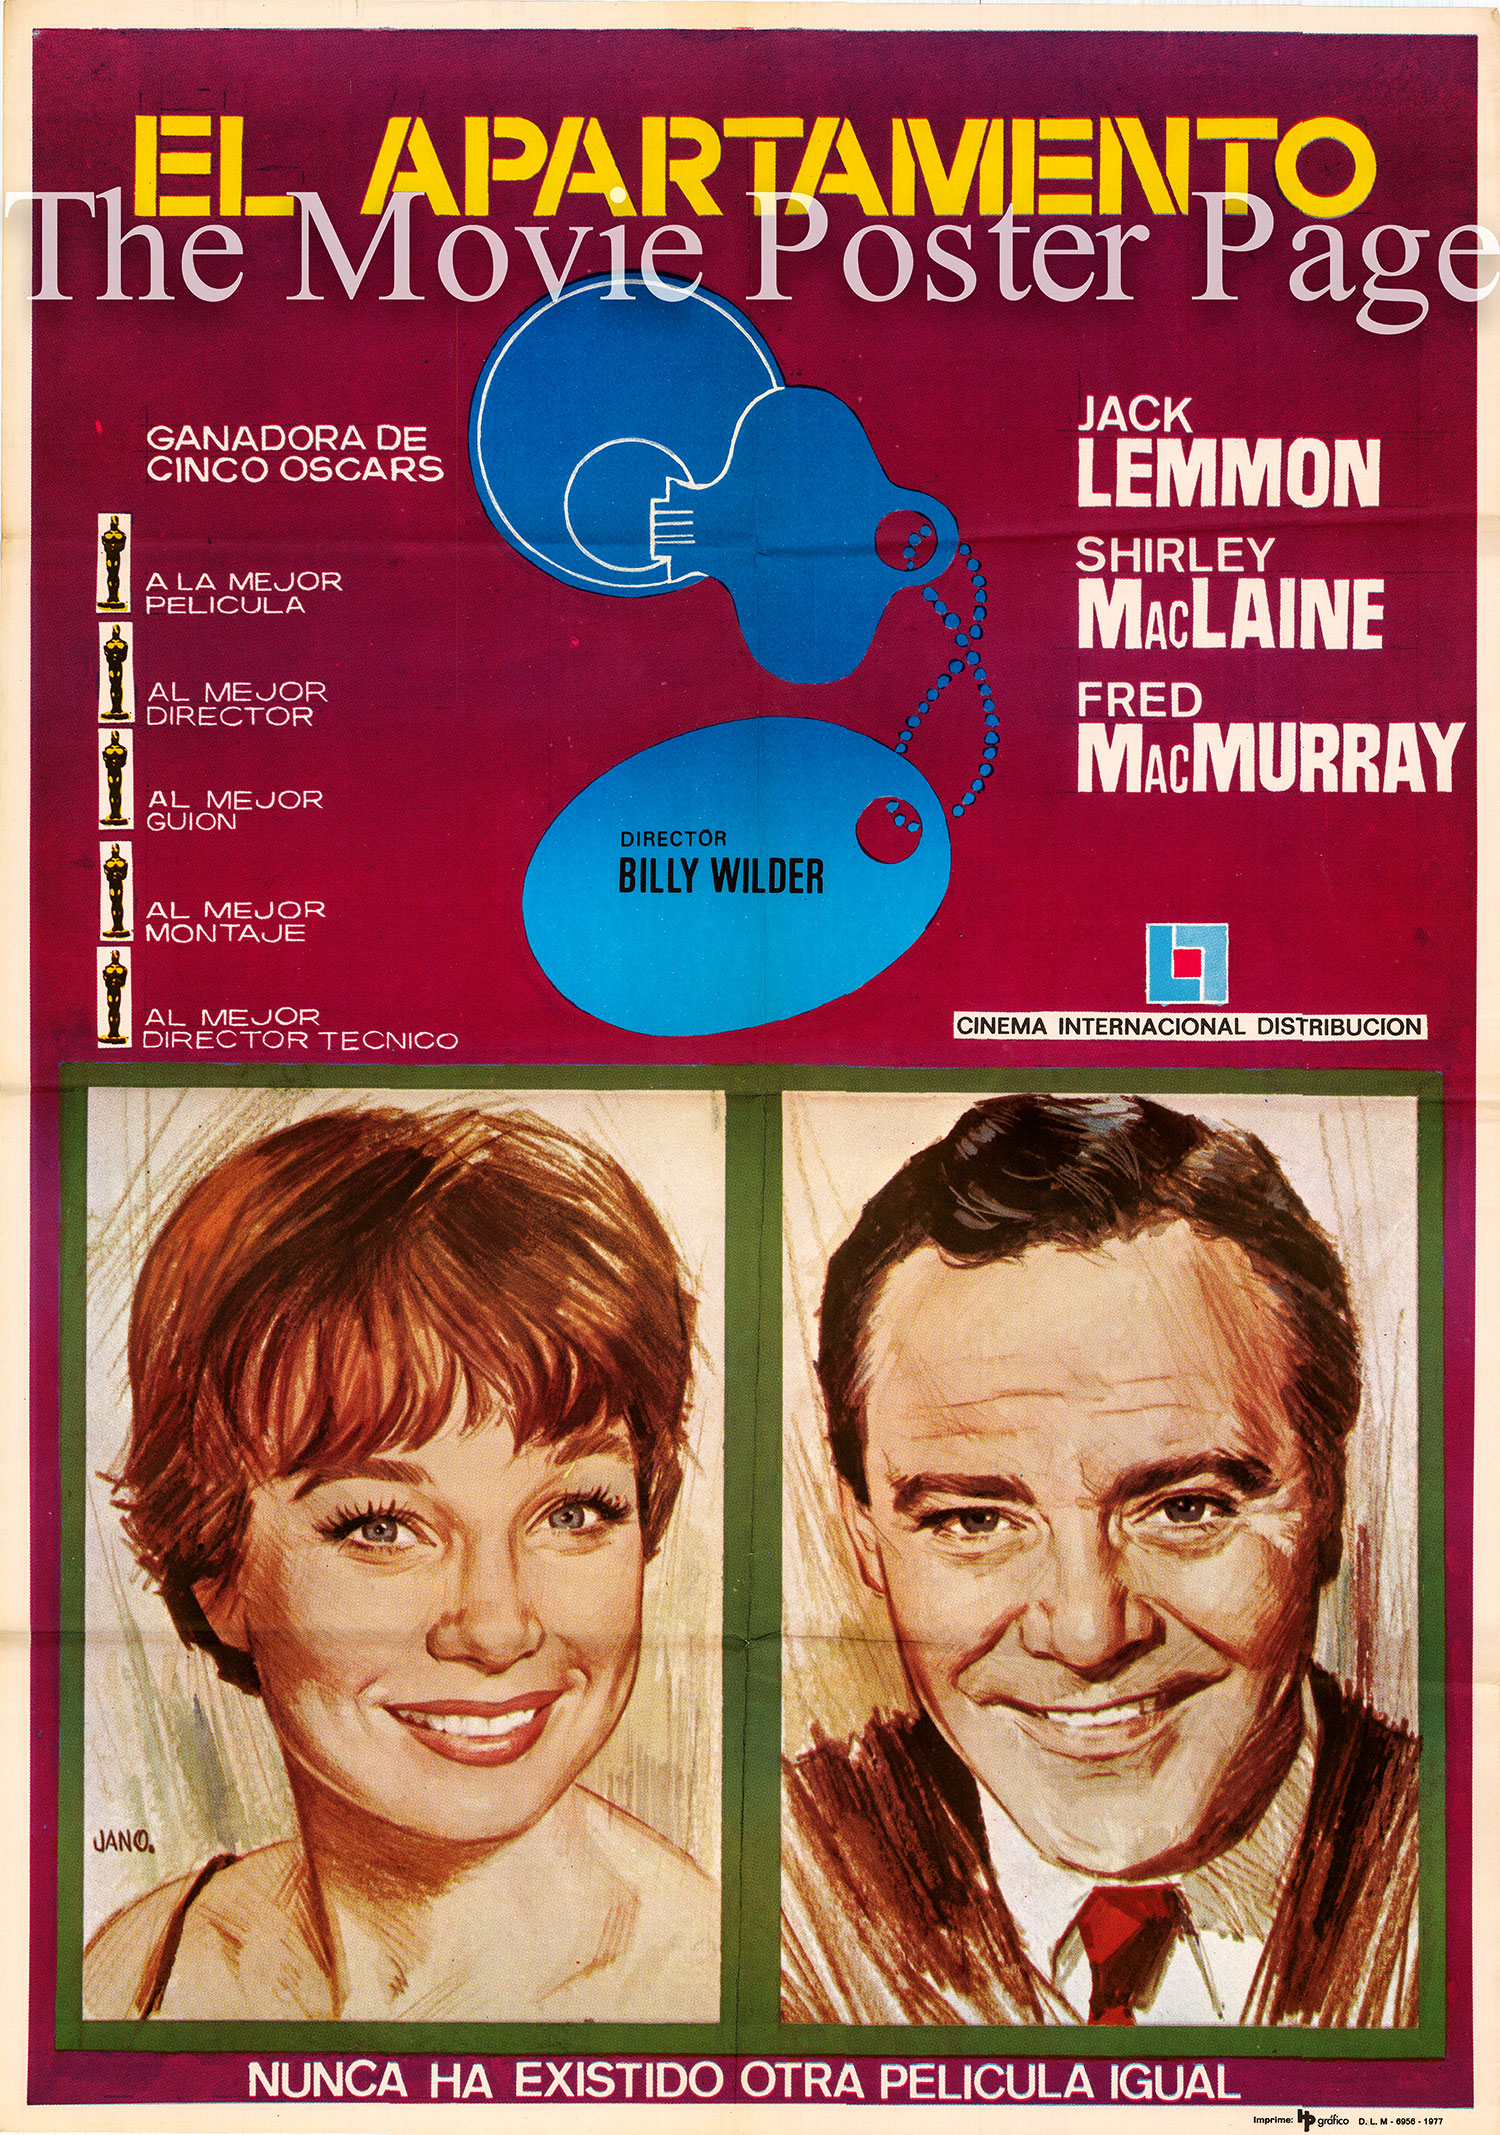 Pictured is a 1977 Spanish rerelease poster for the 1960 Billy Wilder film The Apartment starring Jack Lemmon.